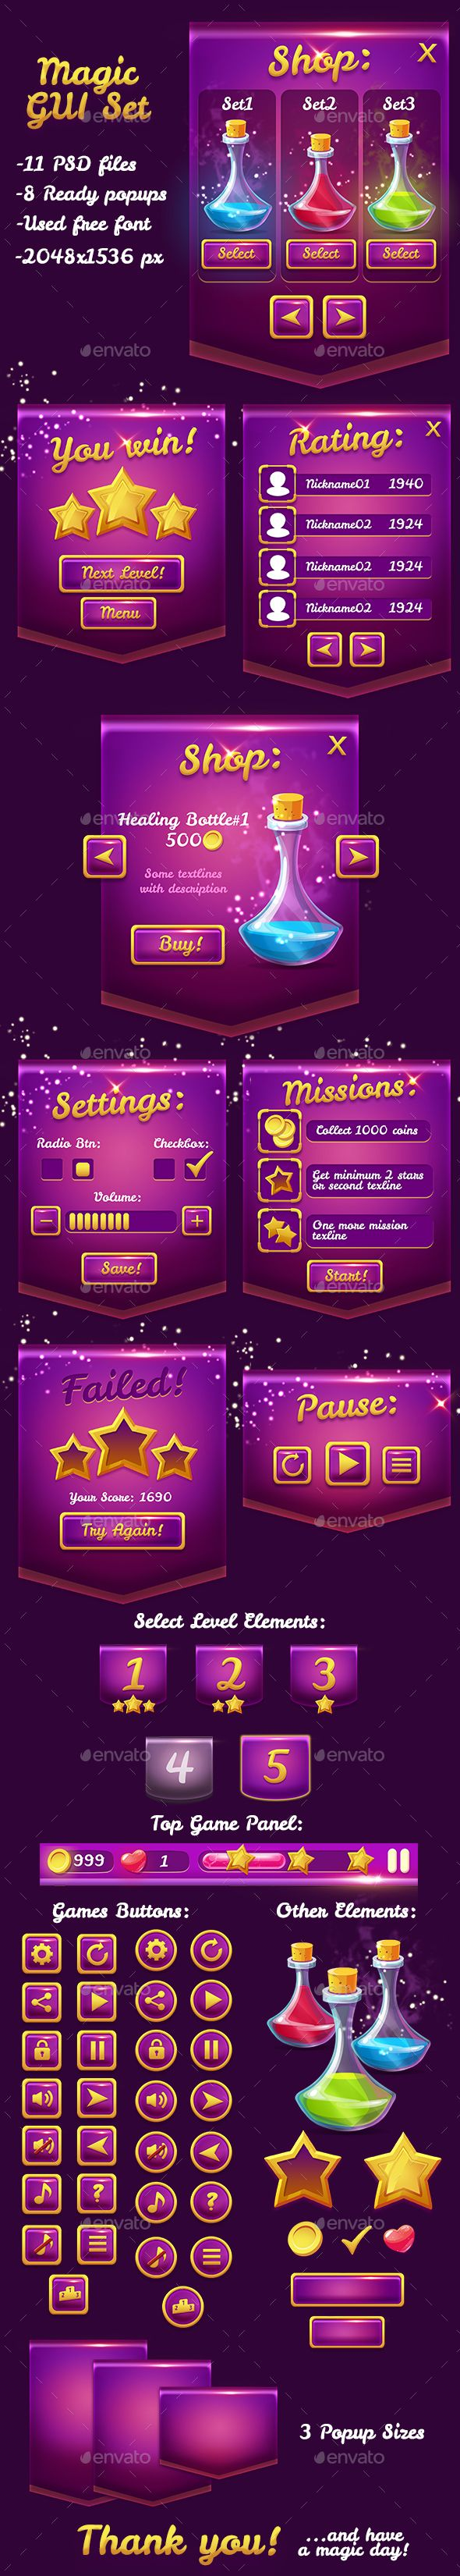 Magical Violet Glossy Game UI Pack Template PSD. Download here: http://graphicriver.net/item/magical-violet-glossy-game-ui-pack/15577565?ref=ksioks